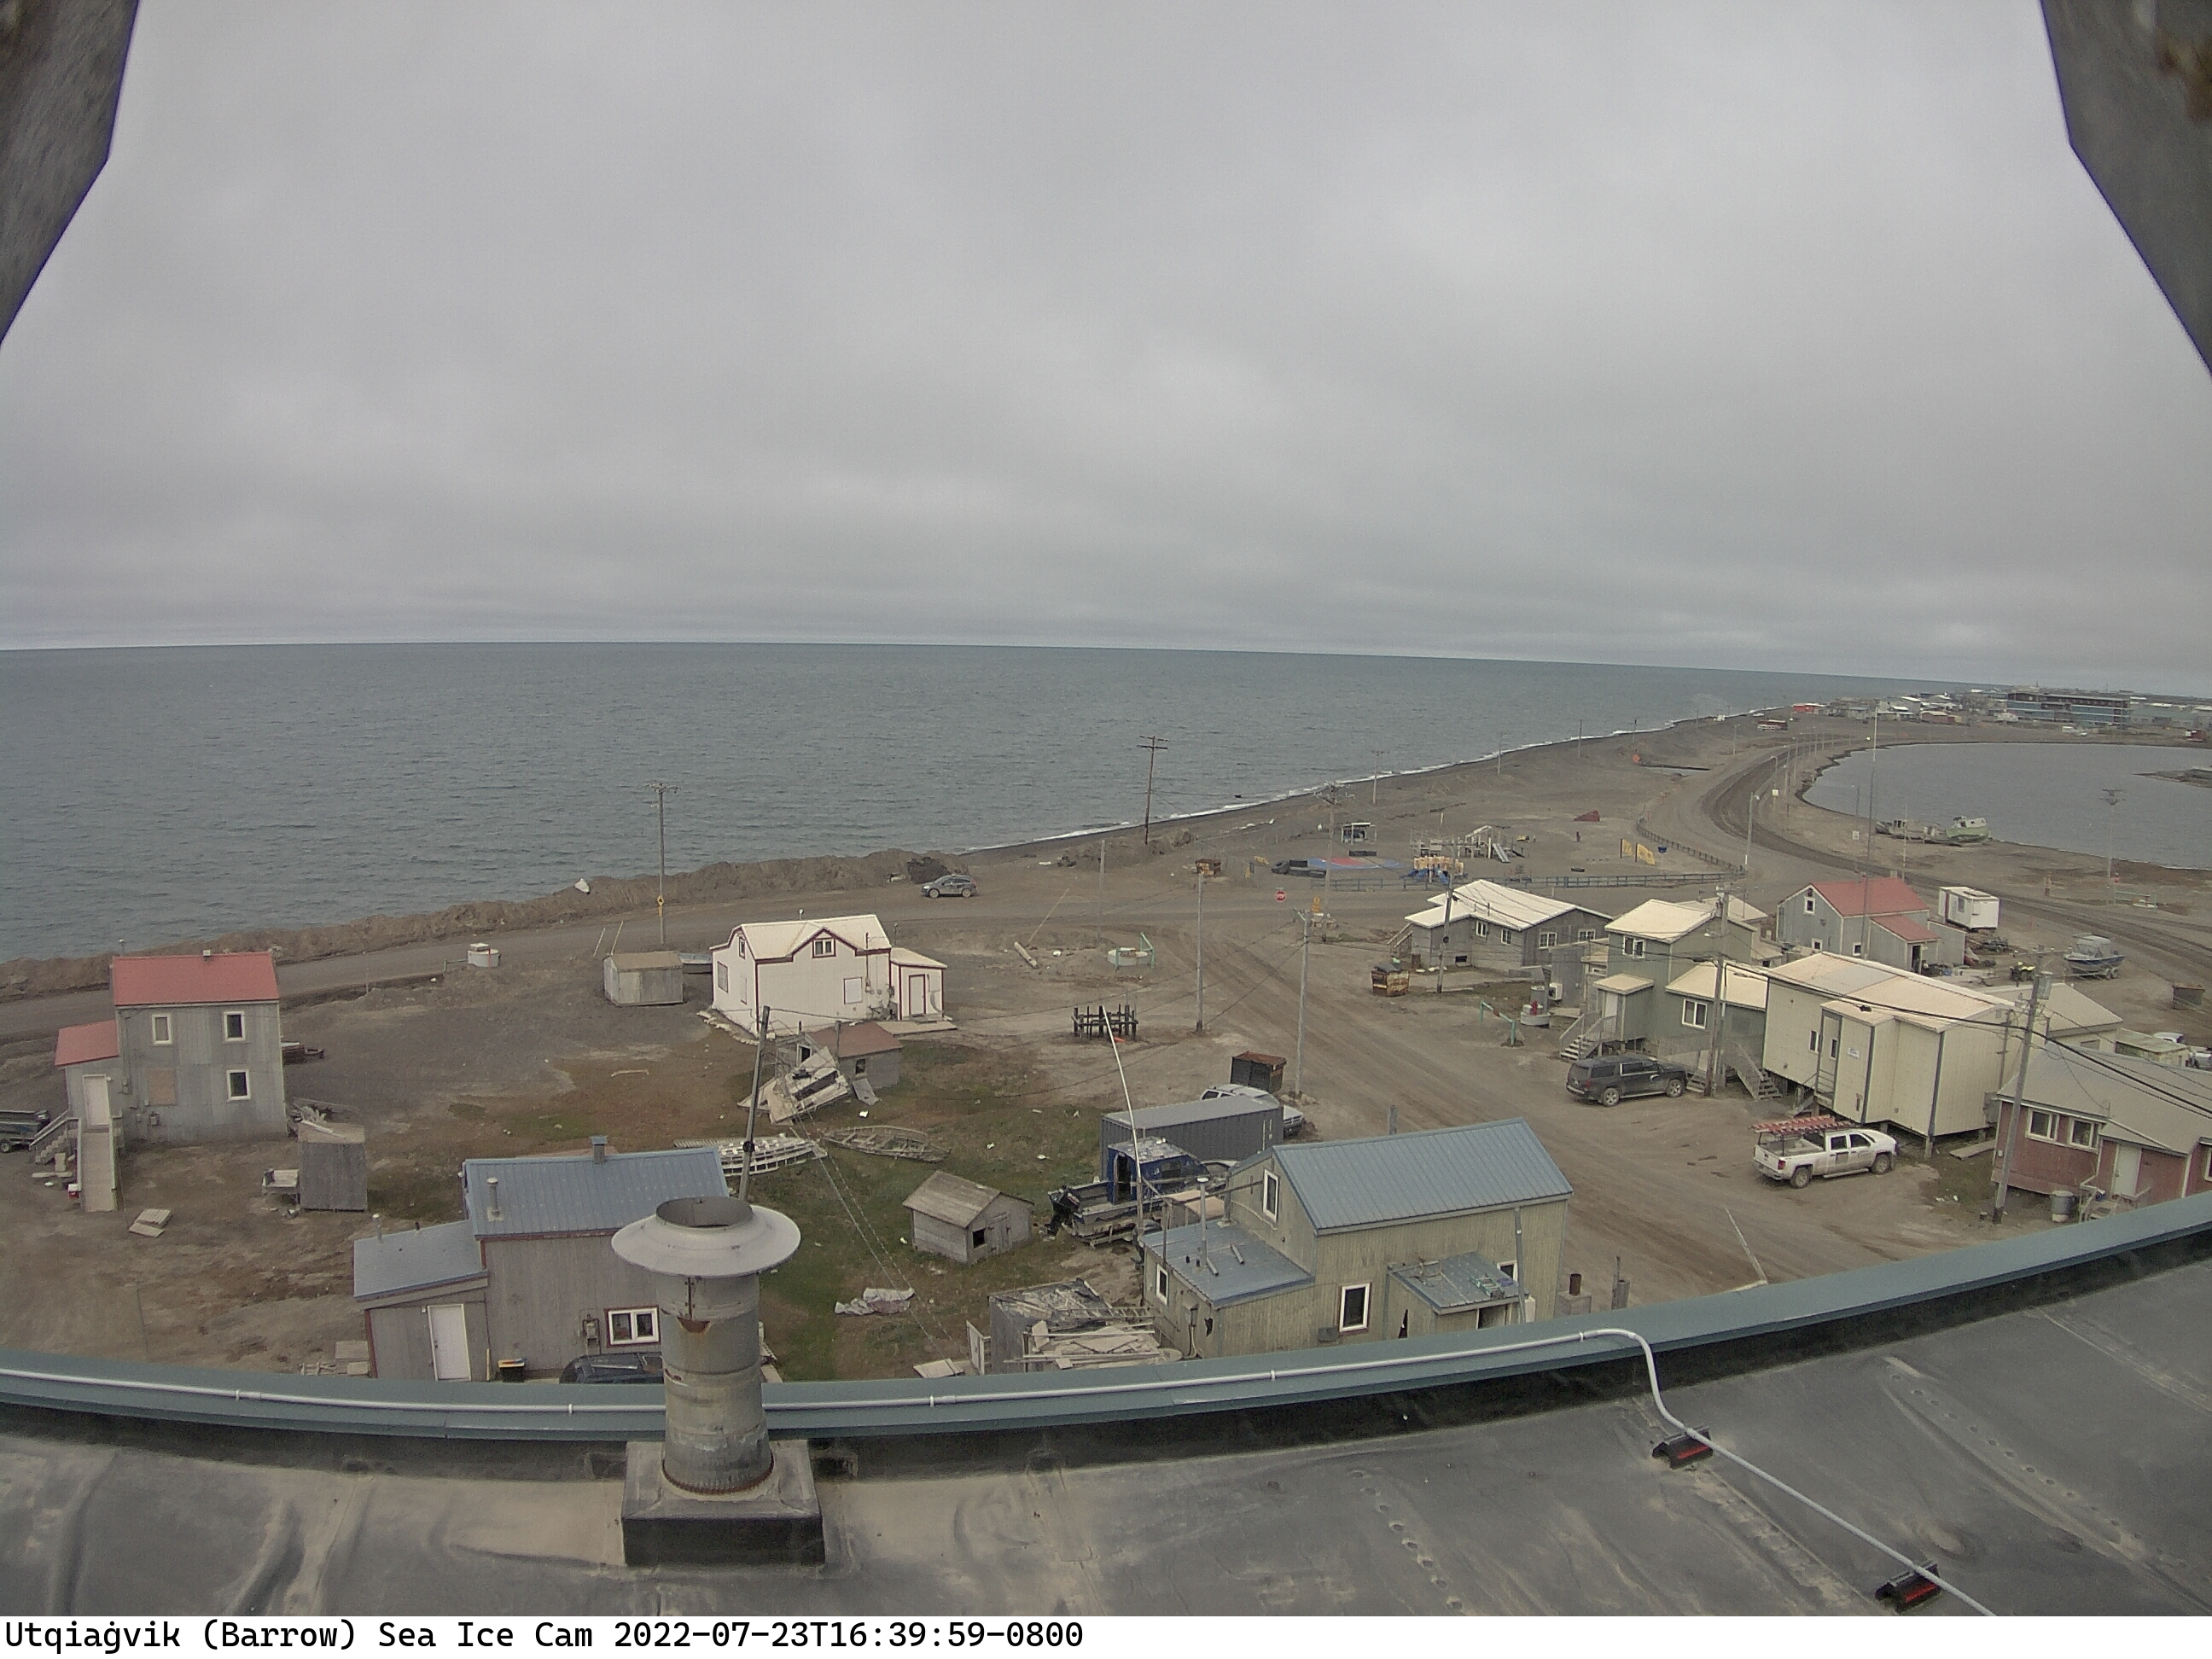 Utqiaġvik (Barrow) Sea Ice Webcam